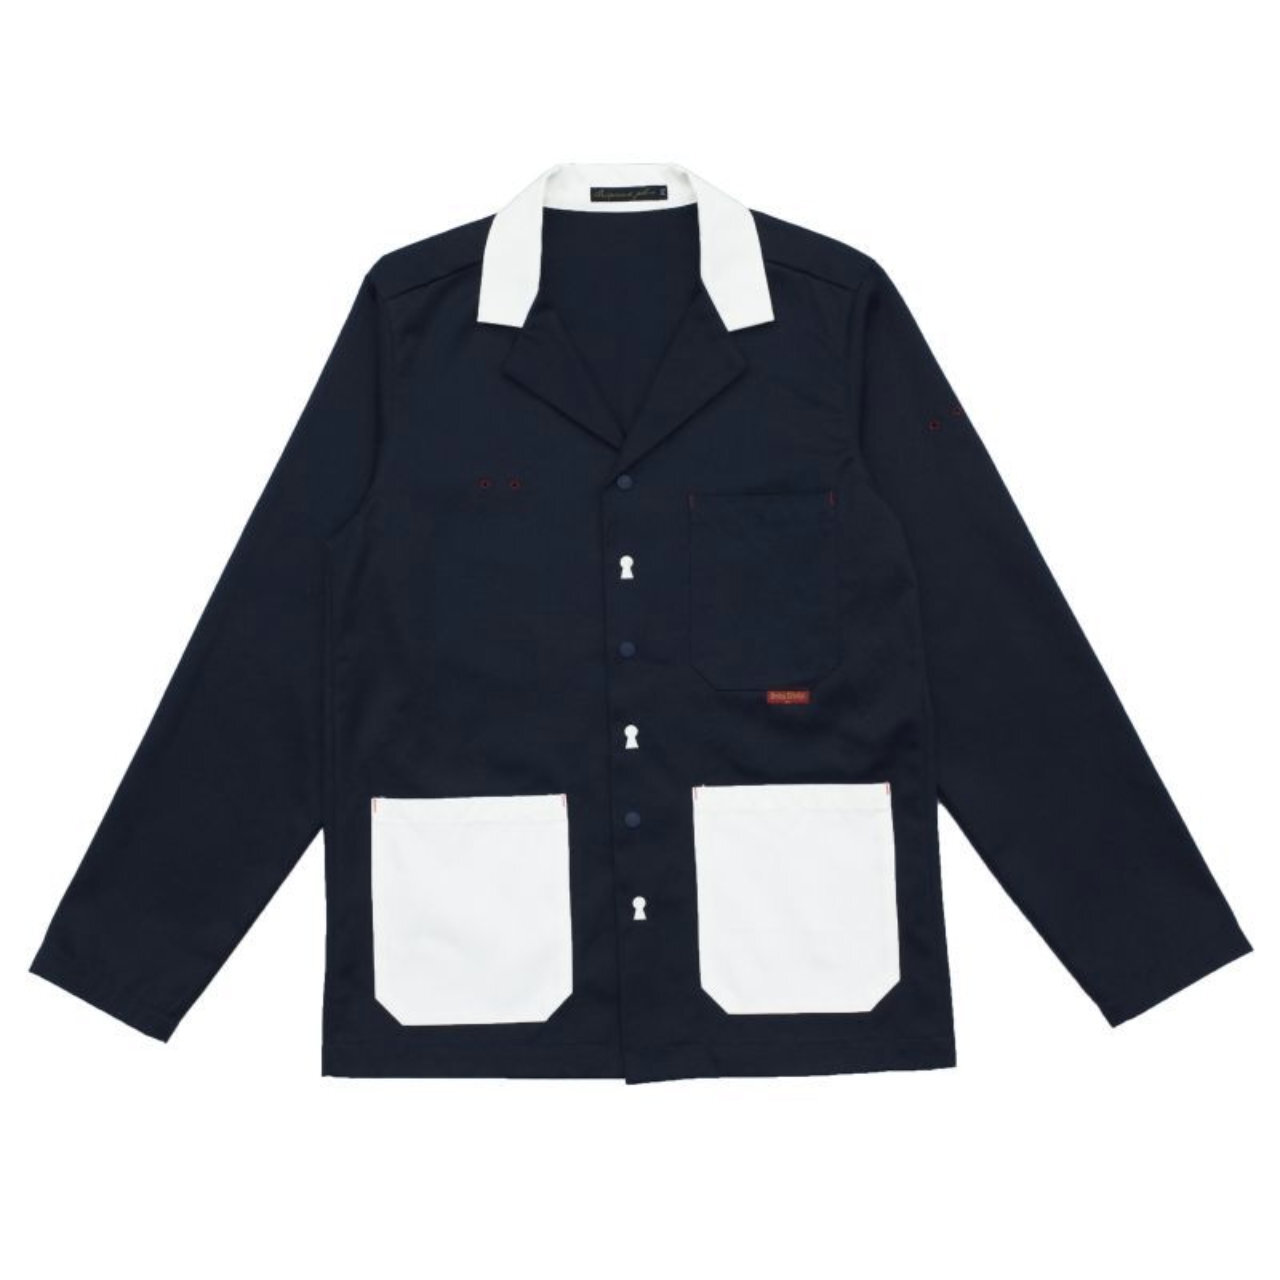 Original John | KINKY WORK JACKET - Navy [JK385]